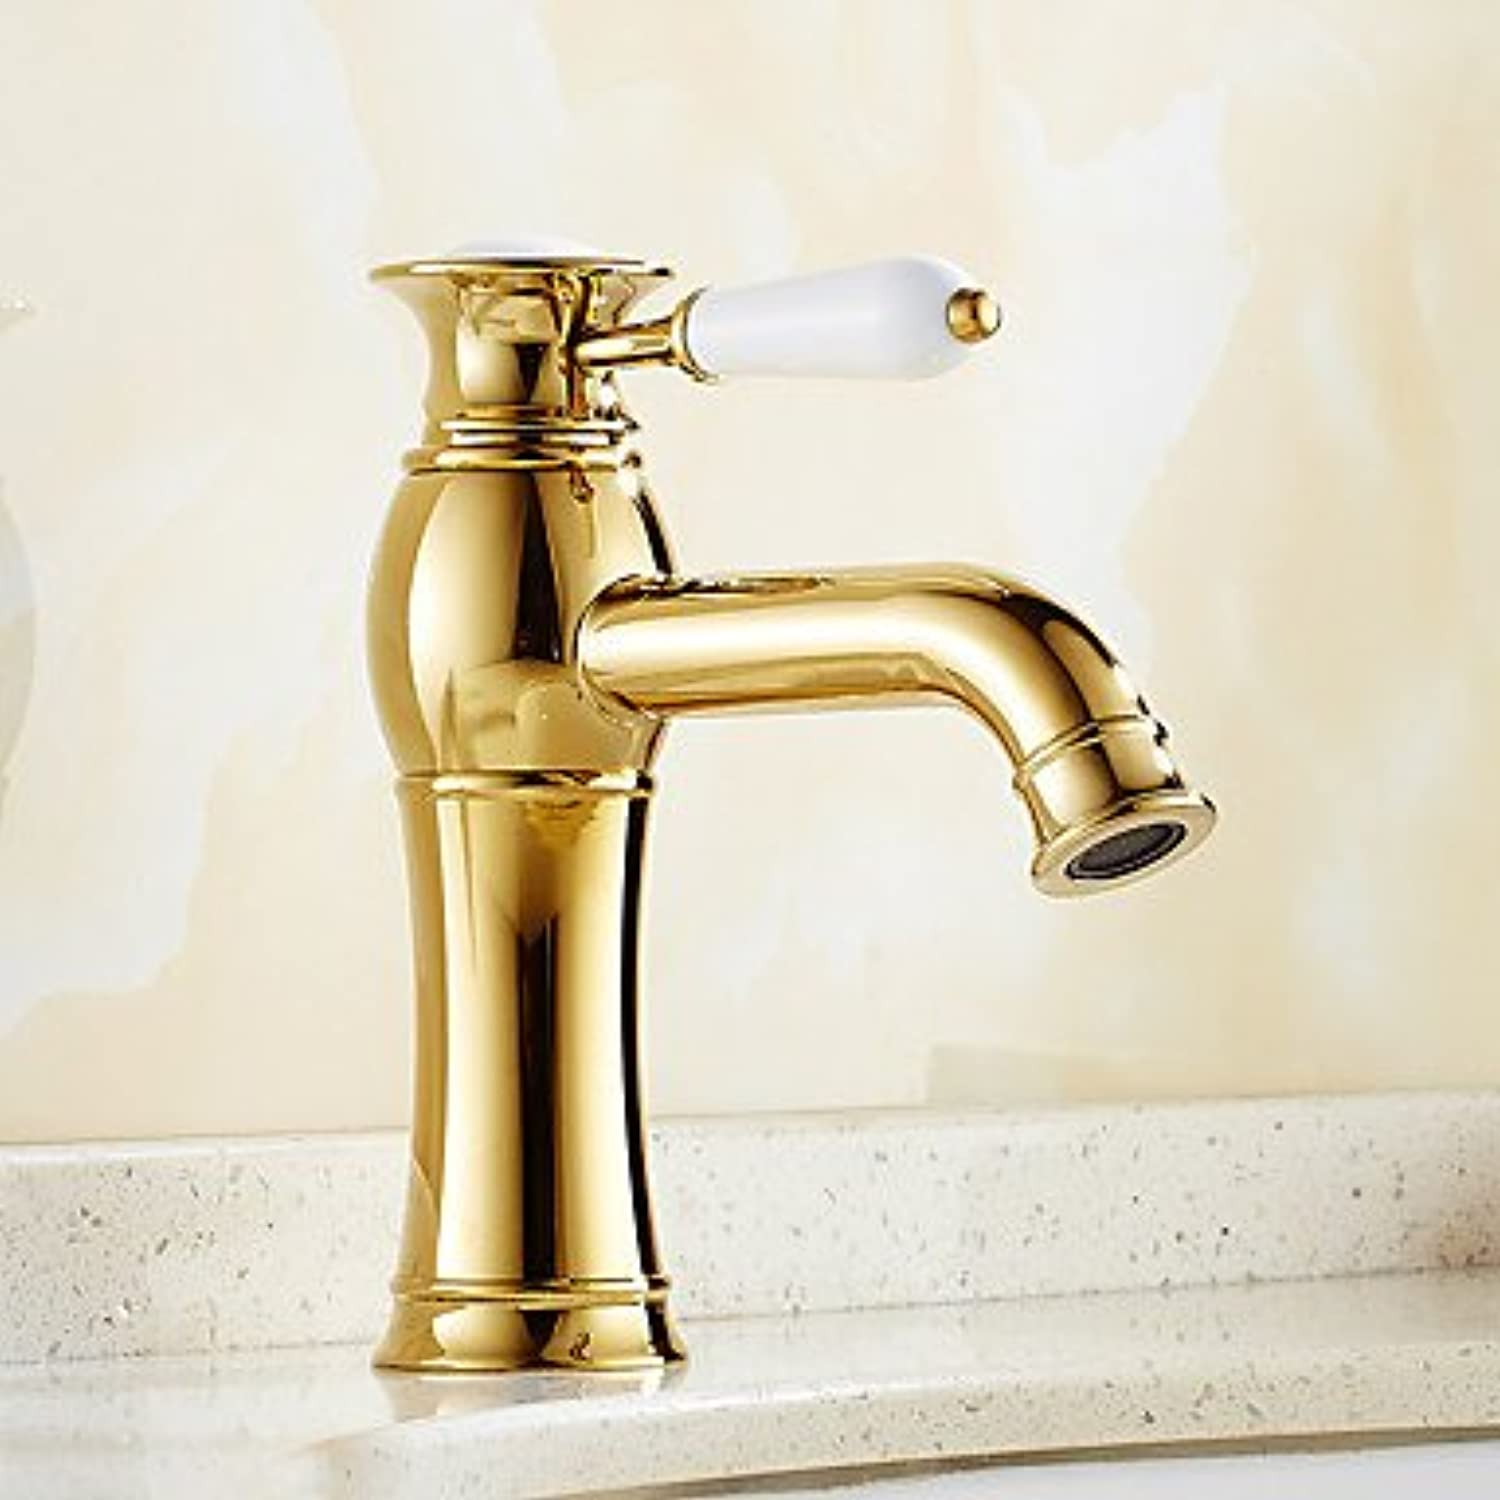 ZYT Contemporary Creative Fashion Style Brass Ti-PVD Bathroom Sink Faucet